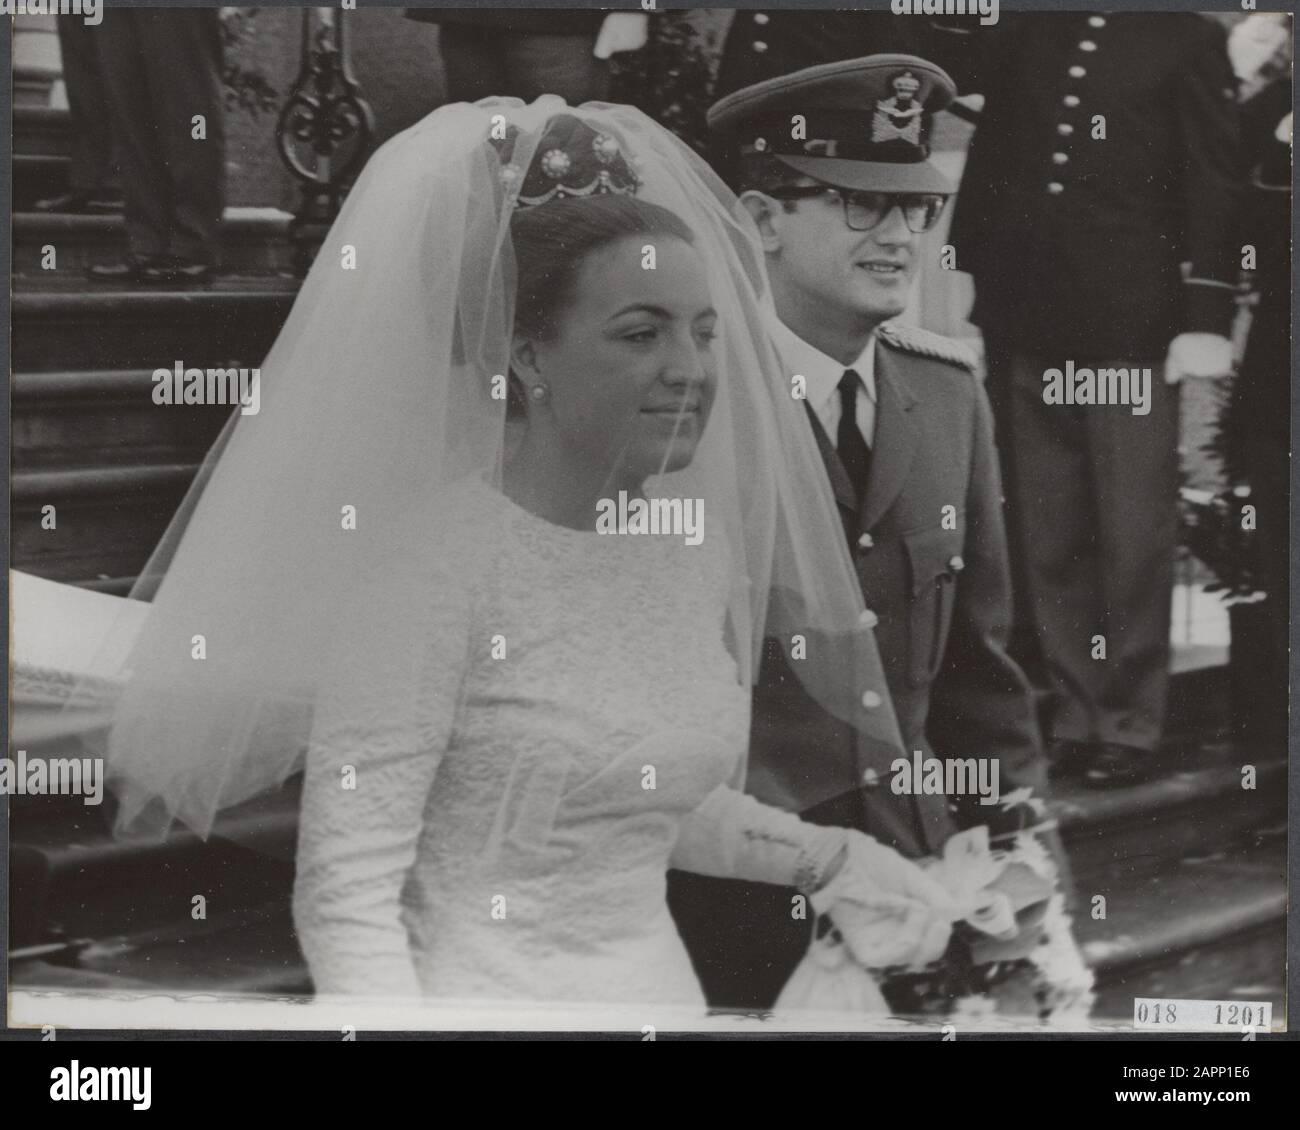 Marriage princess Margriet and mr. Van Vollenhove. The newlyweds leave Huis ten Bosch in The Hague Date: 10 January 1967 Location: The Hague, Zuid-Holland Keywords: marriages, churches, royal house, princesses, town halls Personal name: Margriet, princess, Vollenhoven, Pieter van Stock Photo